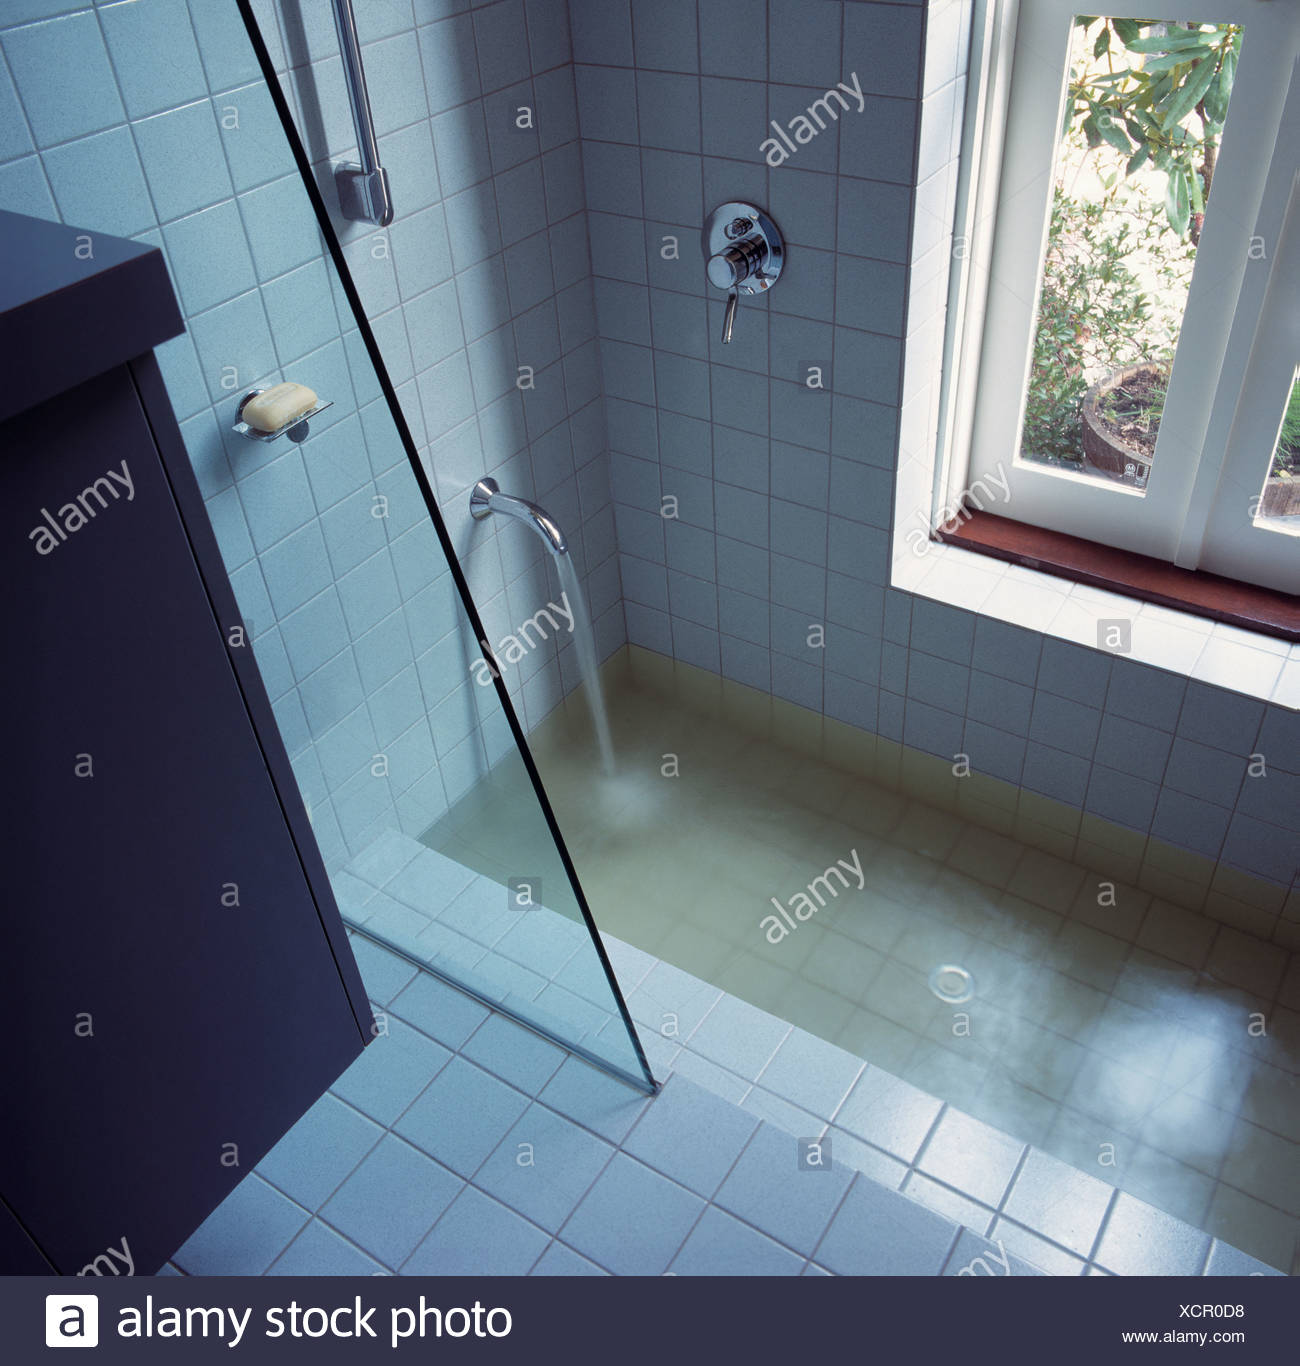 Bathroom shower and sunken bath Stock Photo: 283247028 - Alamy